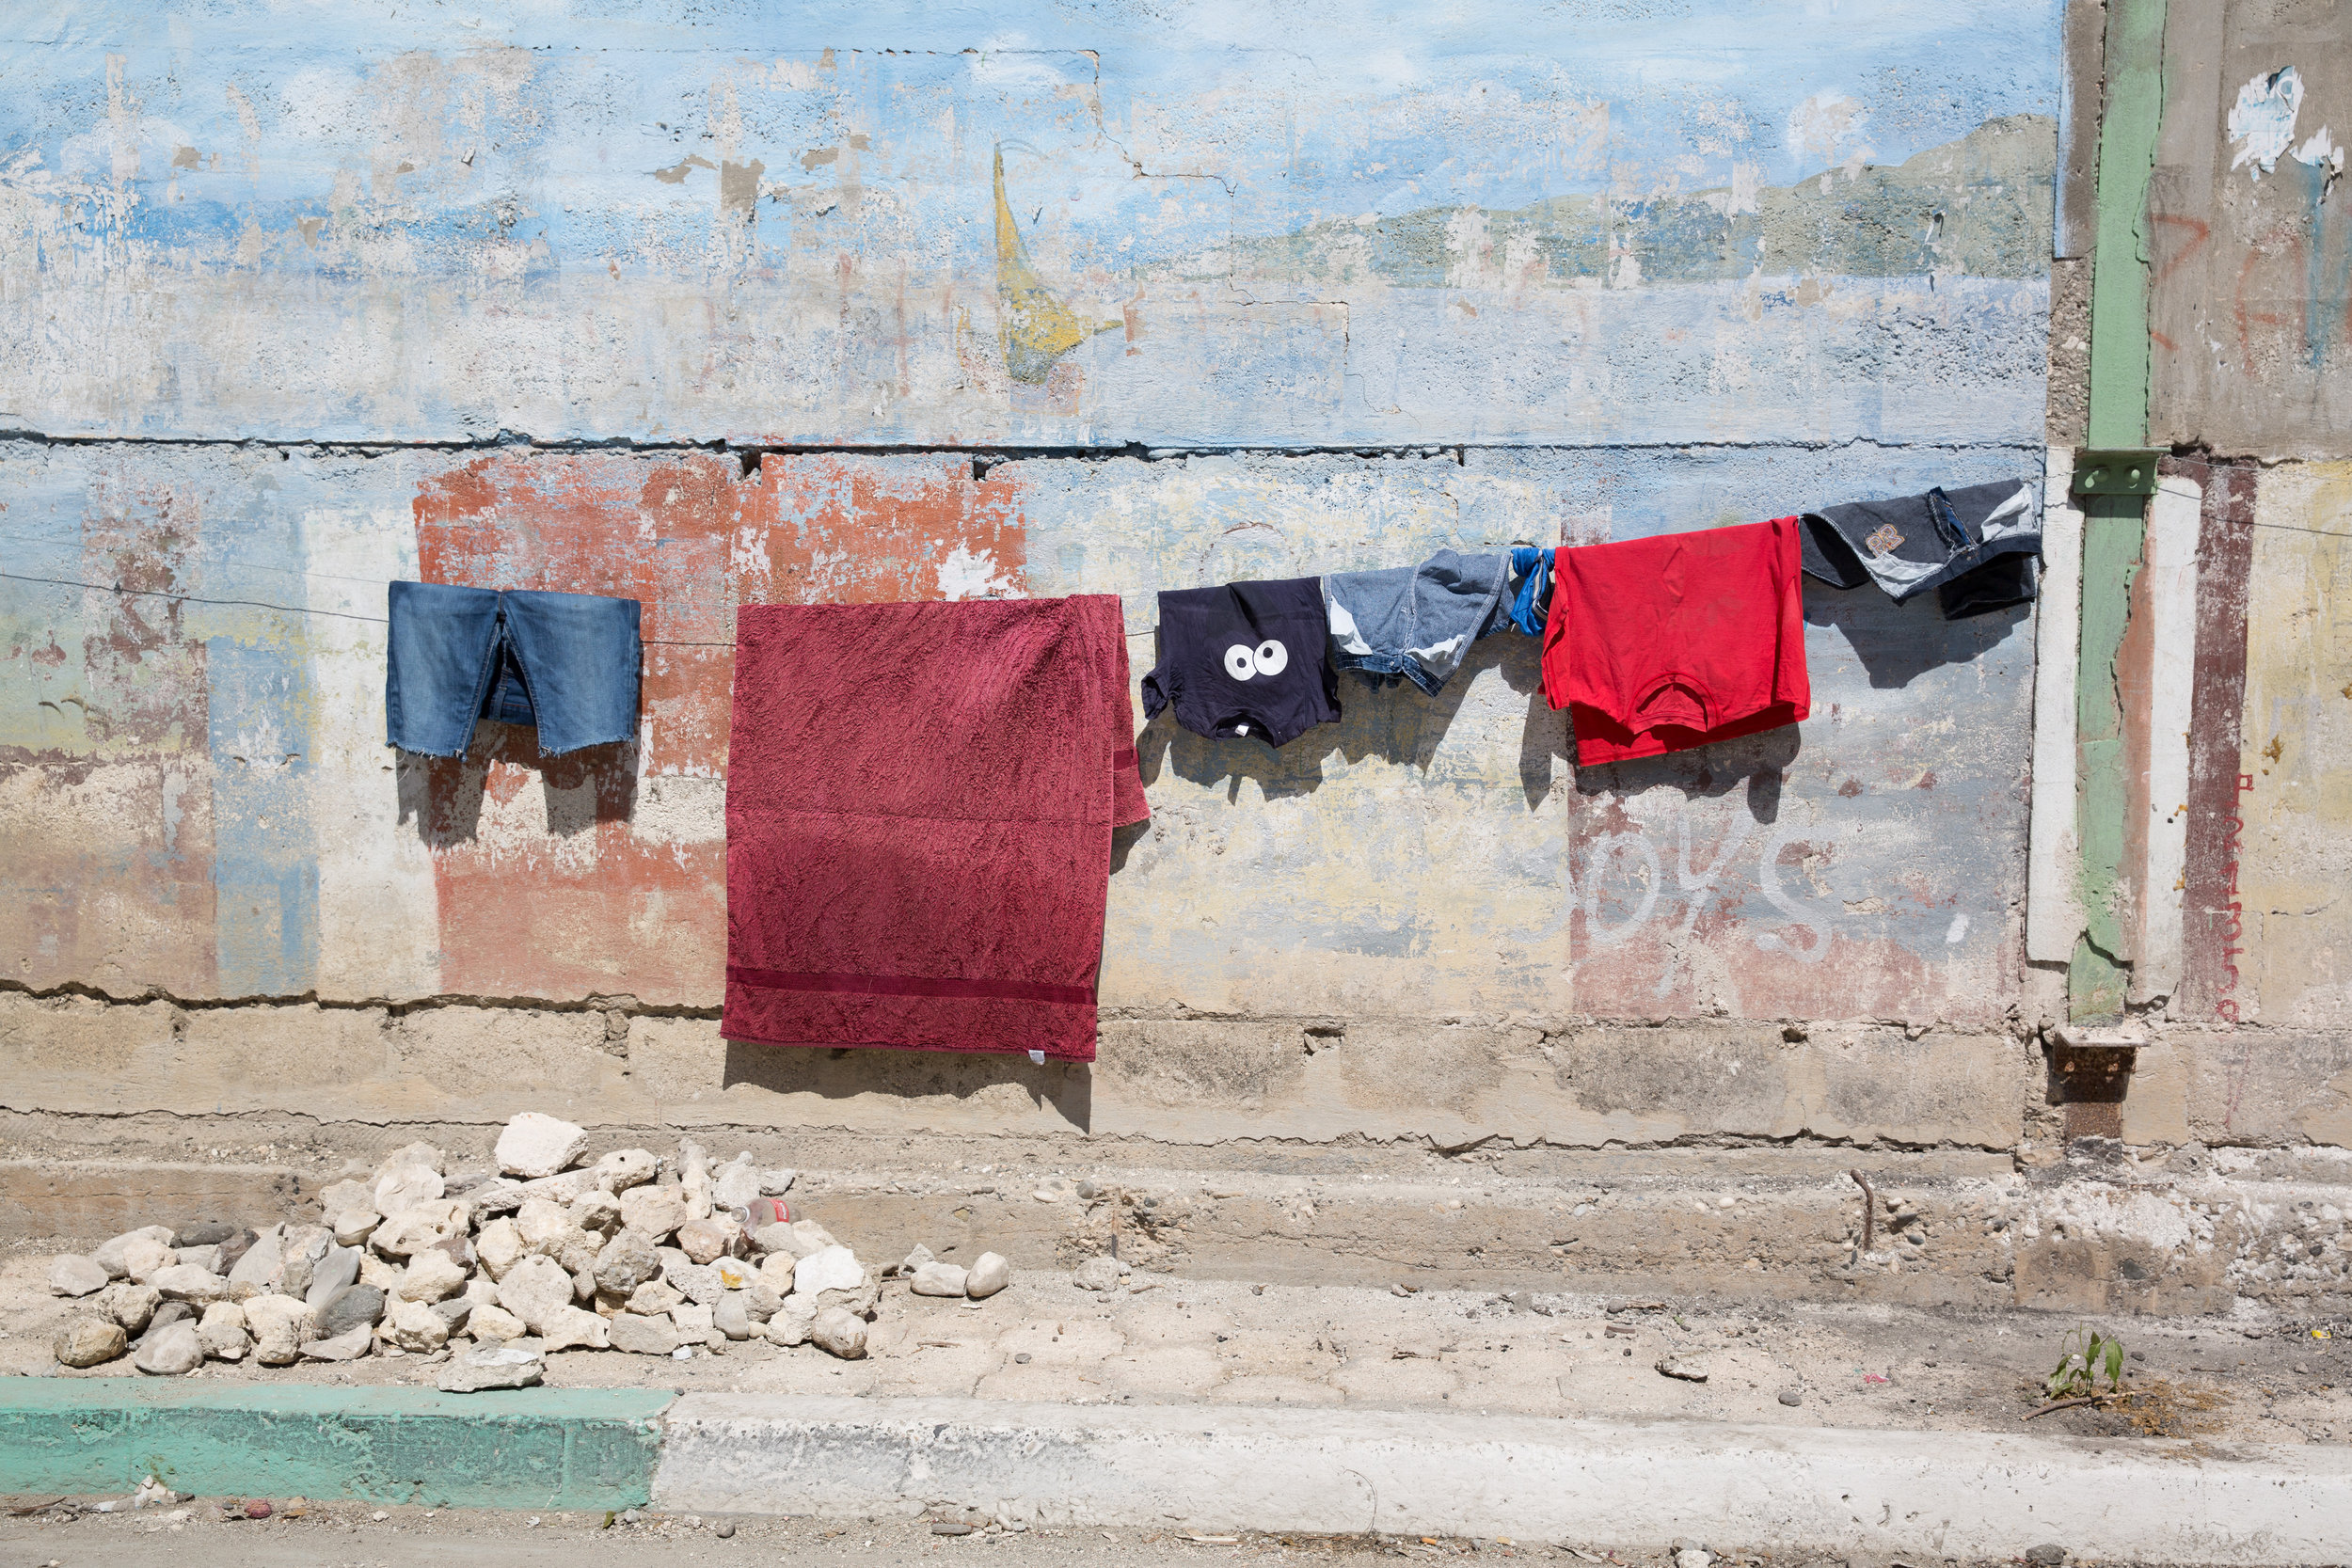 Laundry hangs along Rue Du Commerce in Jacmel, Haiti, on Feb. 4, 2018. Without washing machines, washing clothes by hand at the river or at home is a regular chore for many Haitian women and girls.